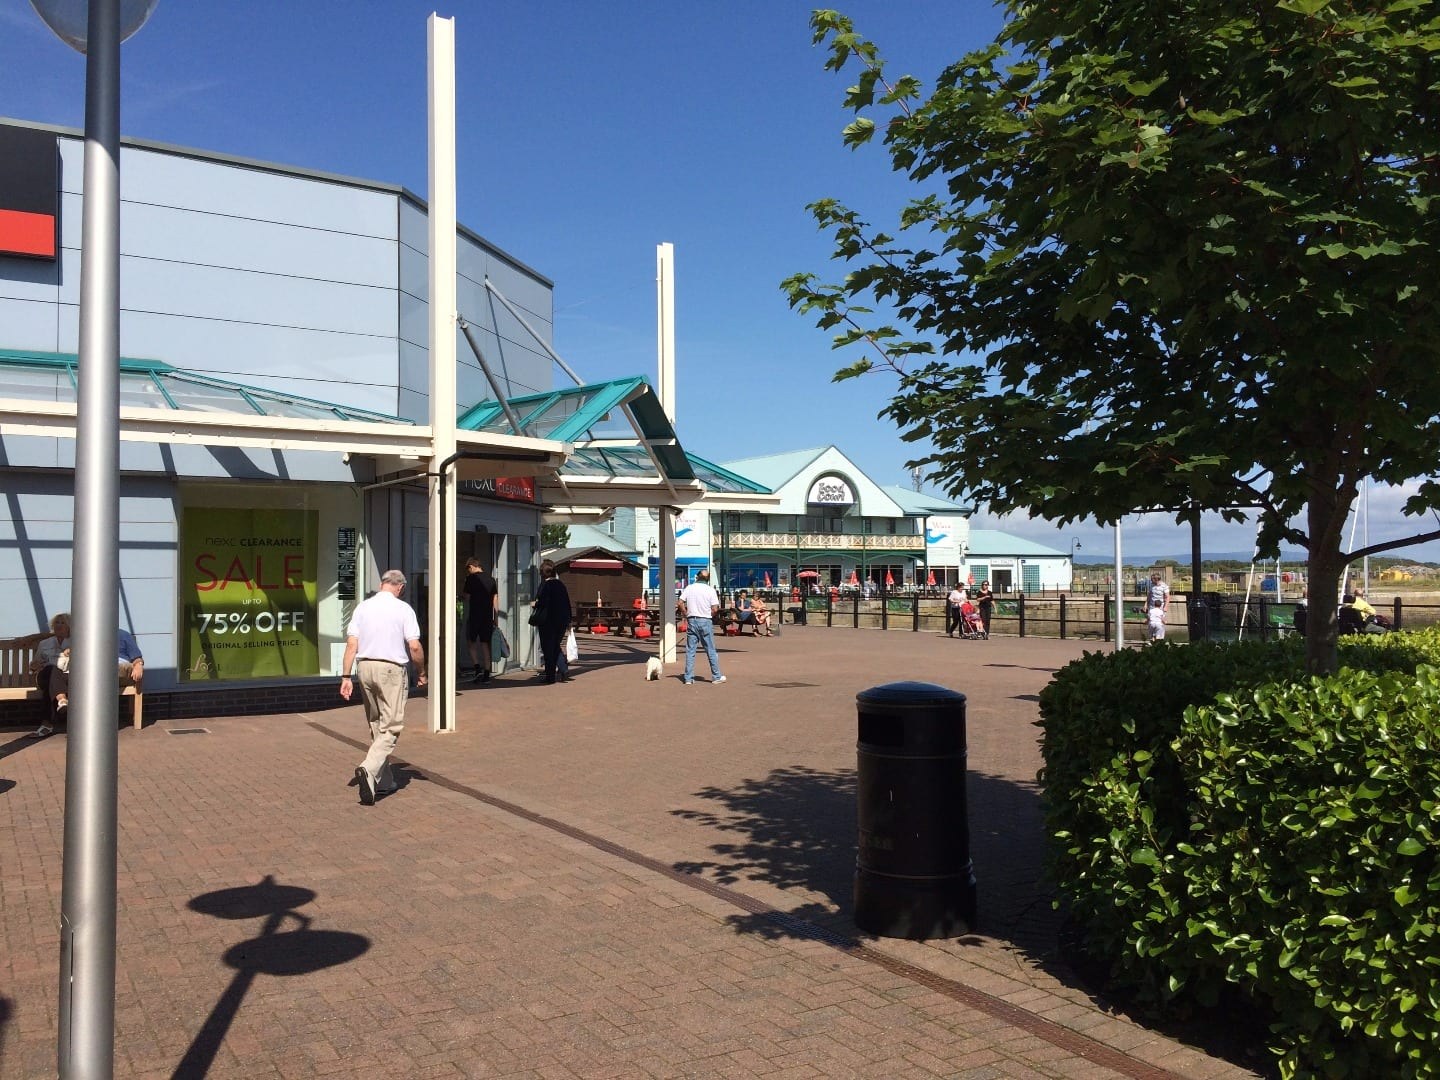 Jobs at Affinity Lancashire, the new name for Freeport Fleetwood